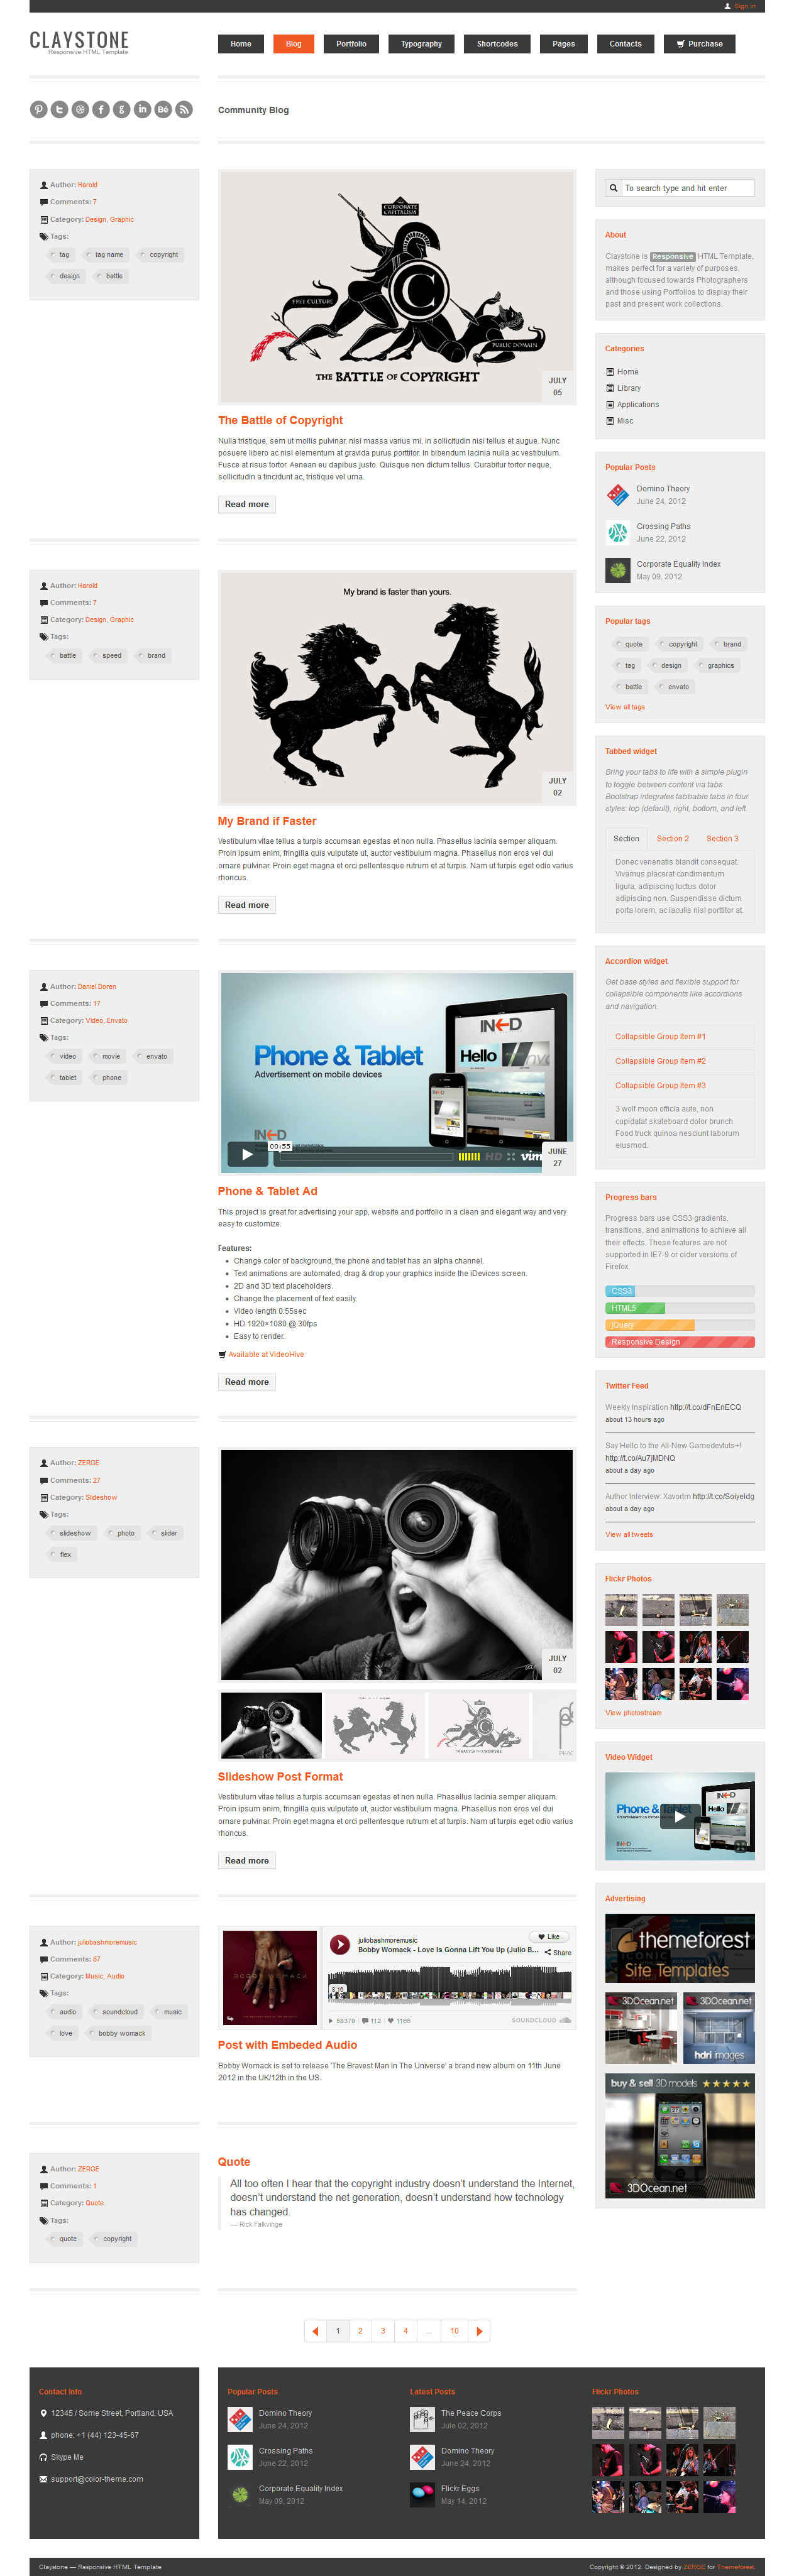 Claystone - Responsive HTML Template - 14 Blog Light